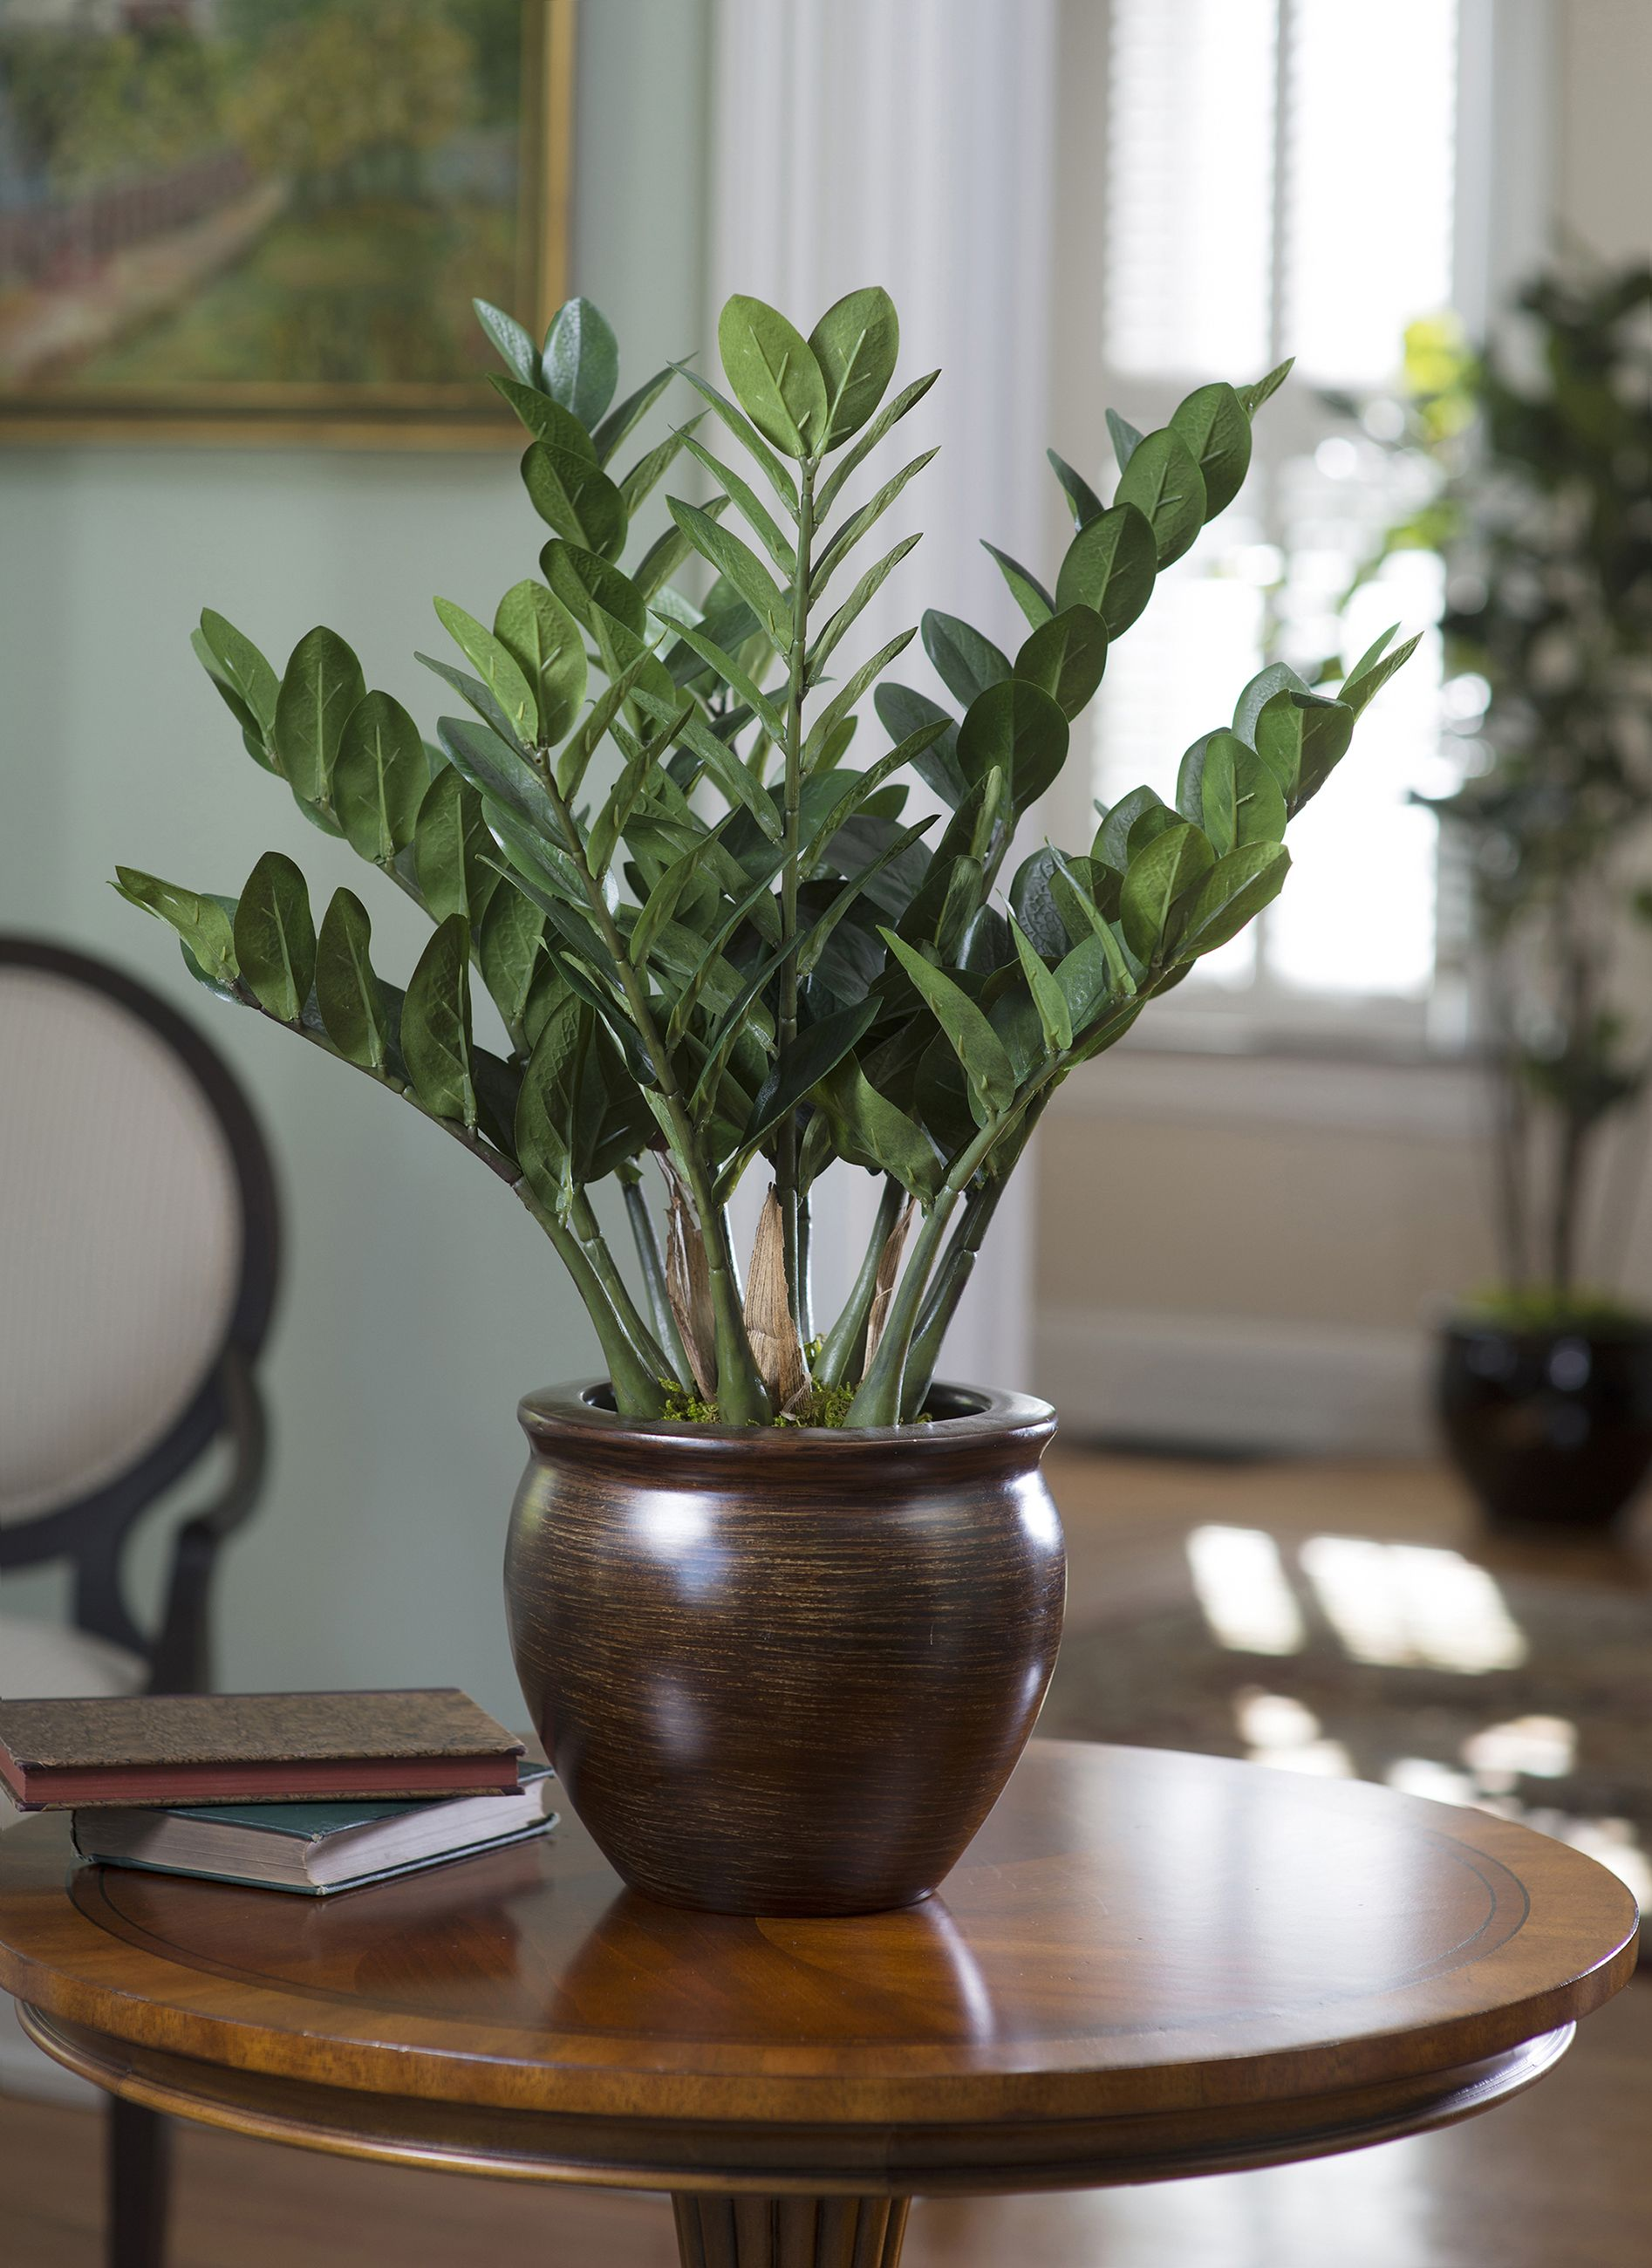 Zz Plant Zamioculcas Or Fits Just About Every Need Handles Low Light Water Requirements Tough Under Indoor Conditions